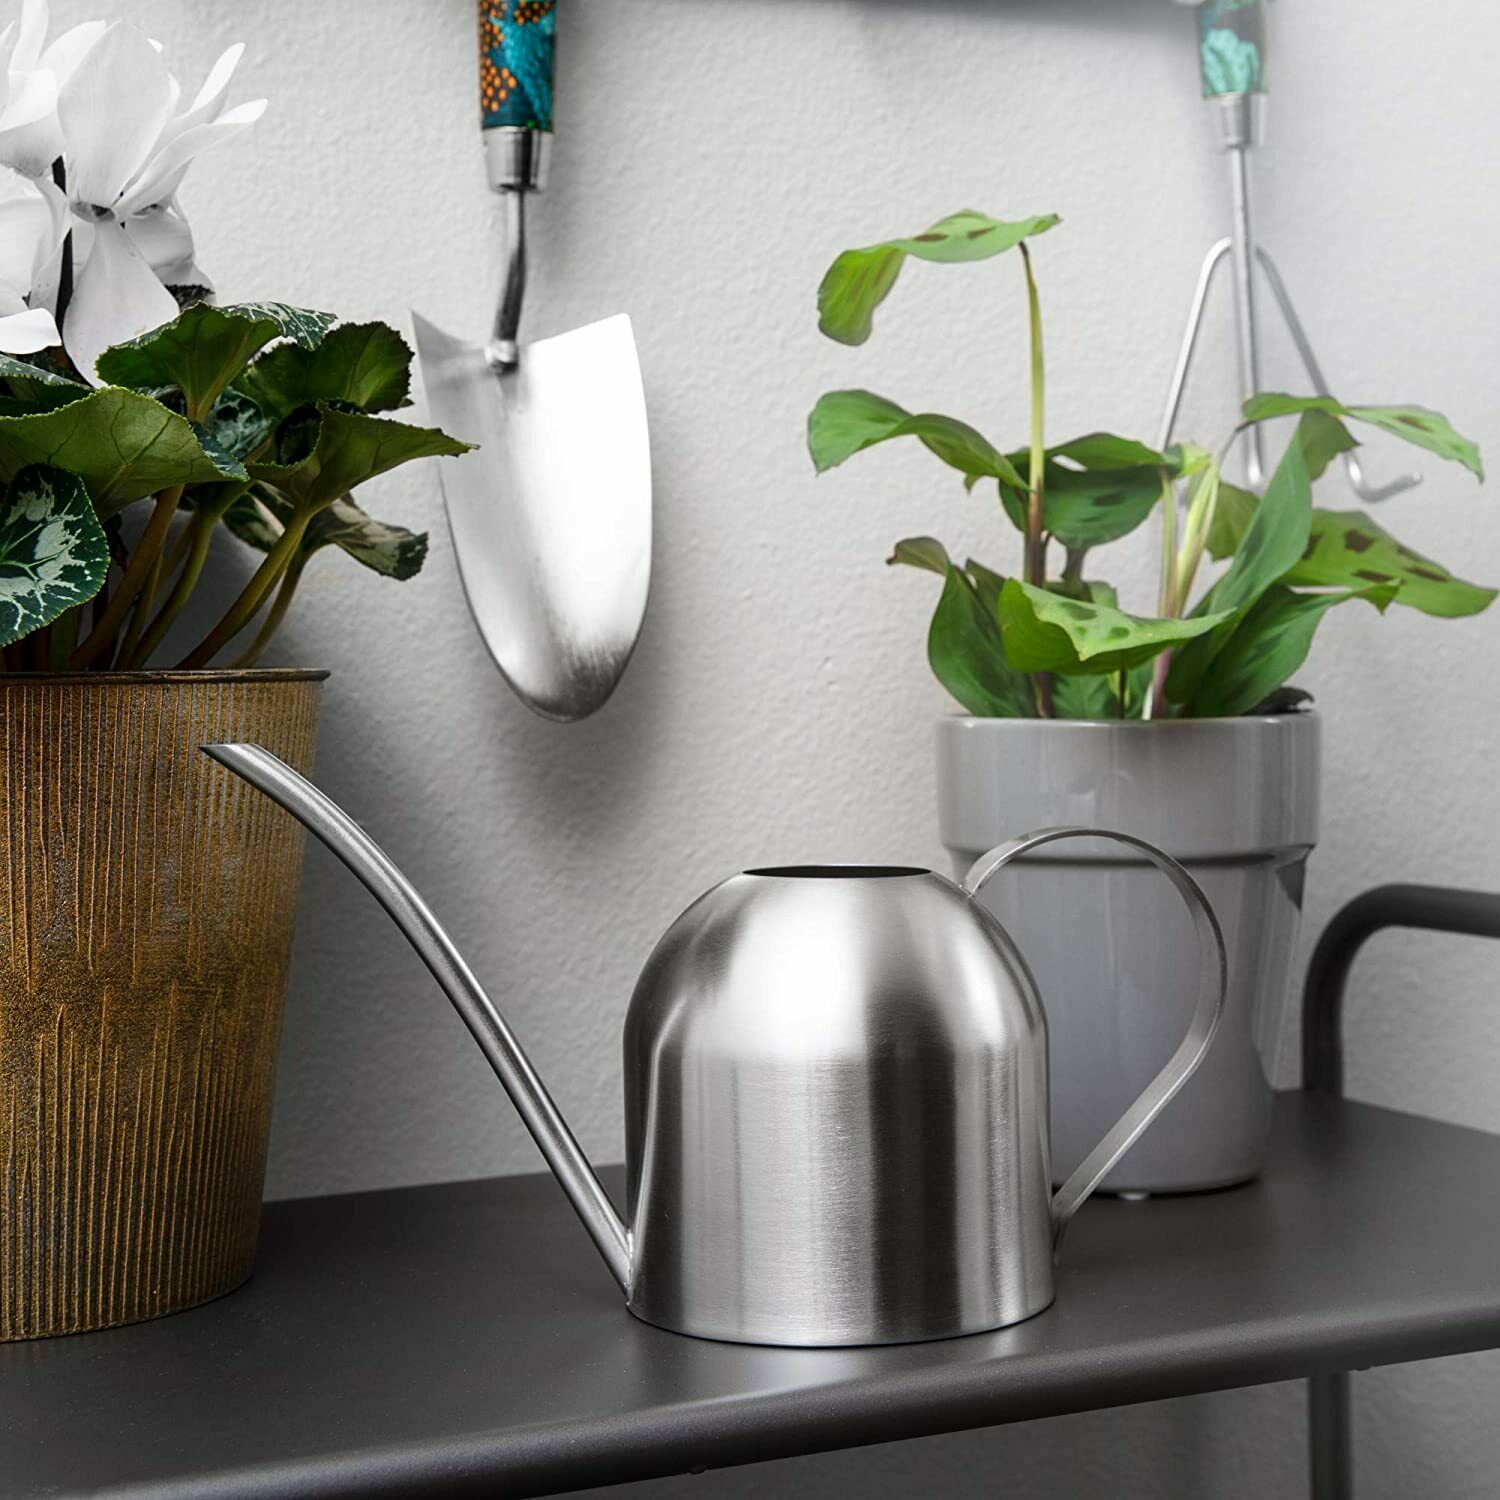 Wioslt Plant Watering Can, Stainless Steel Watering Kettle Pot 17OZ / 500ML